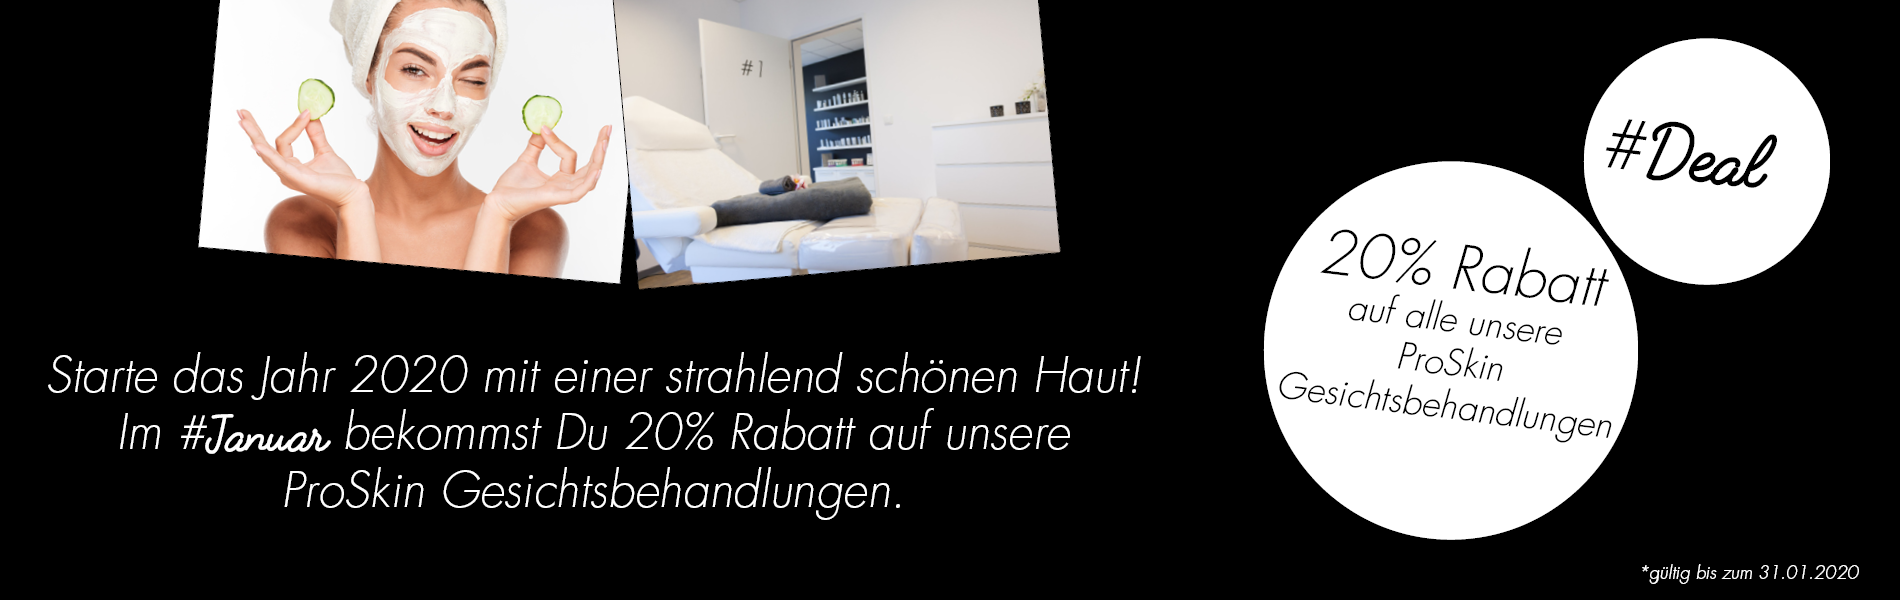 Angebot BeautyBar